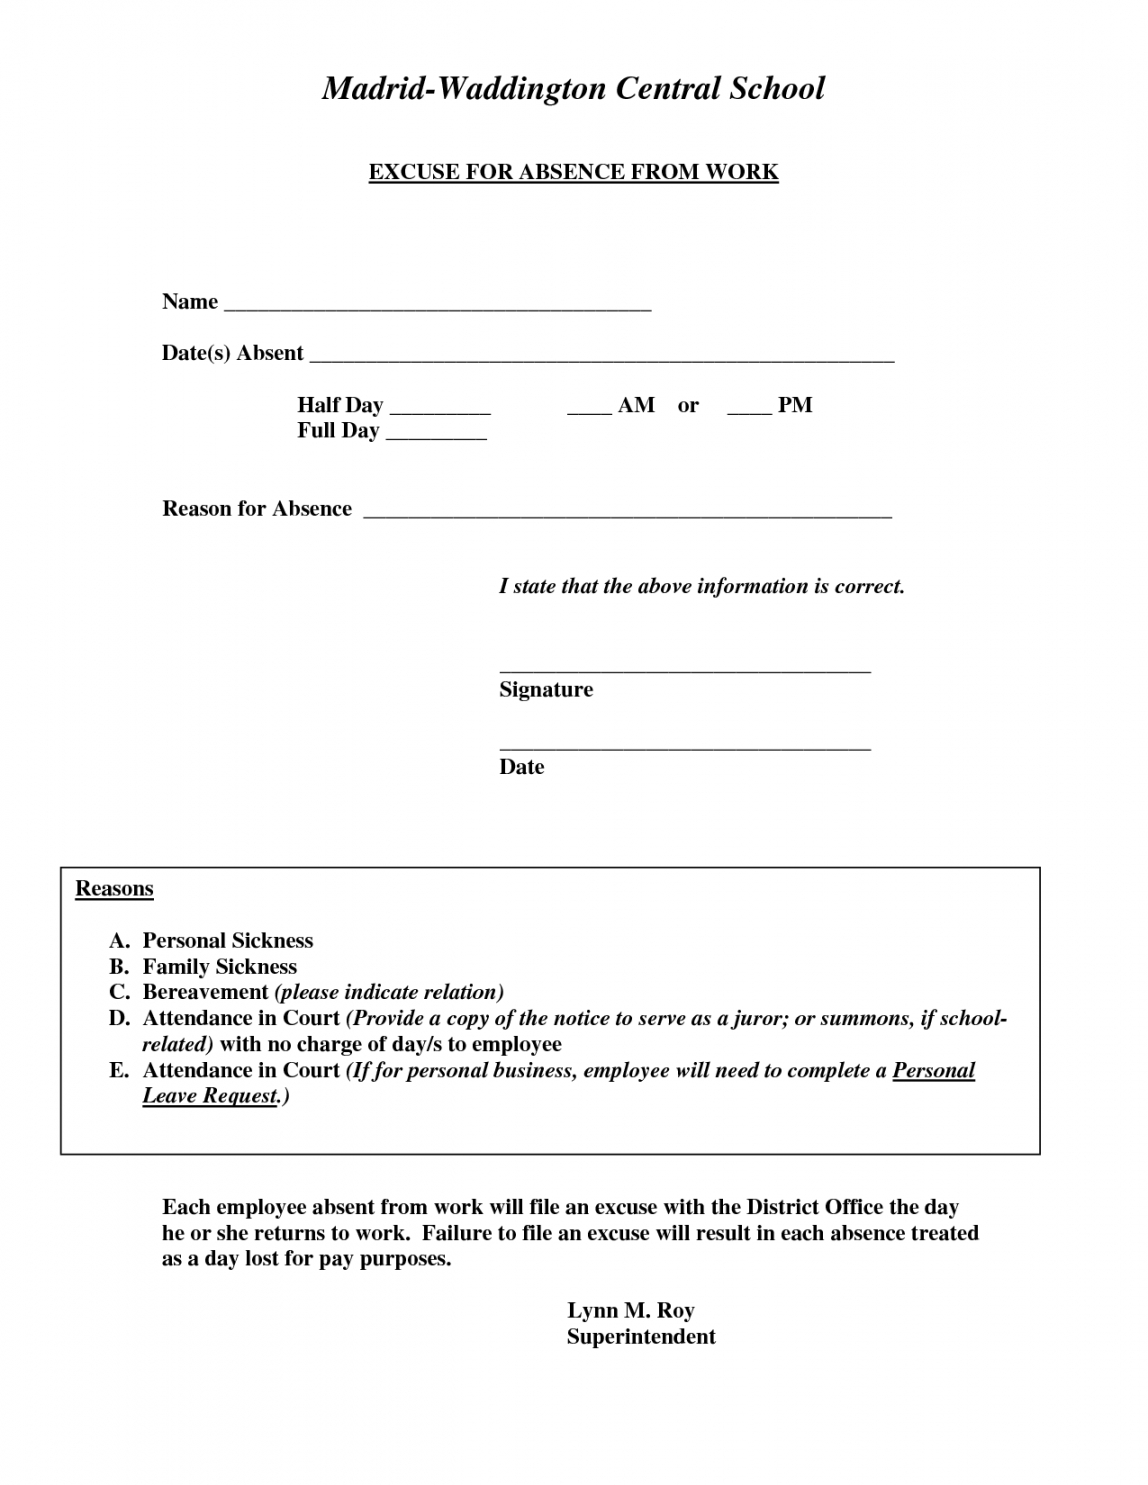 excuse for absence from work  doctors note template doctors excuse note for work template word